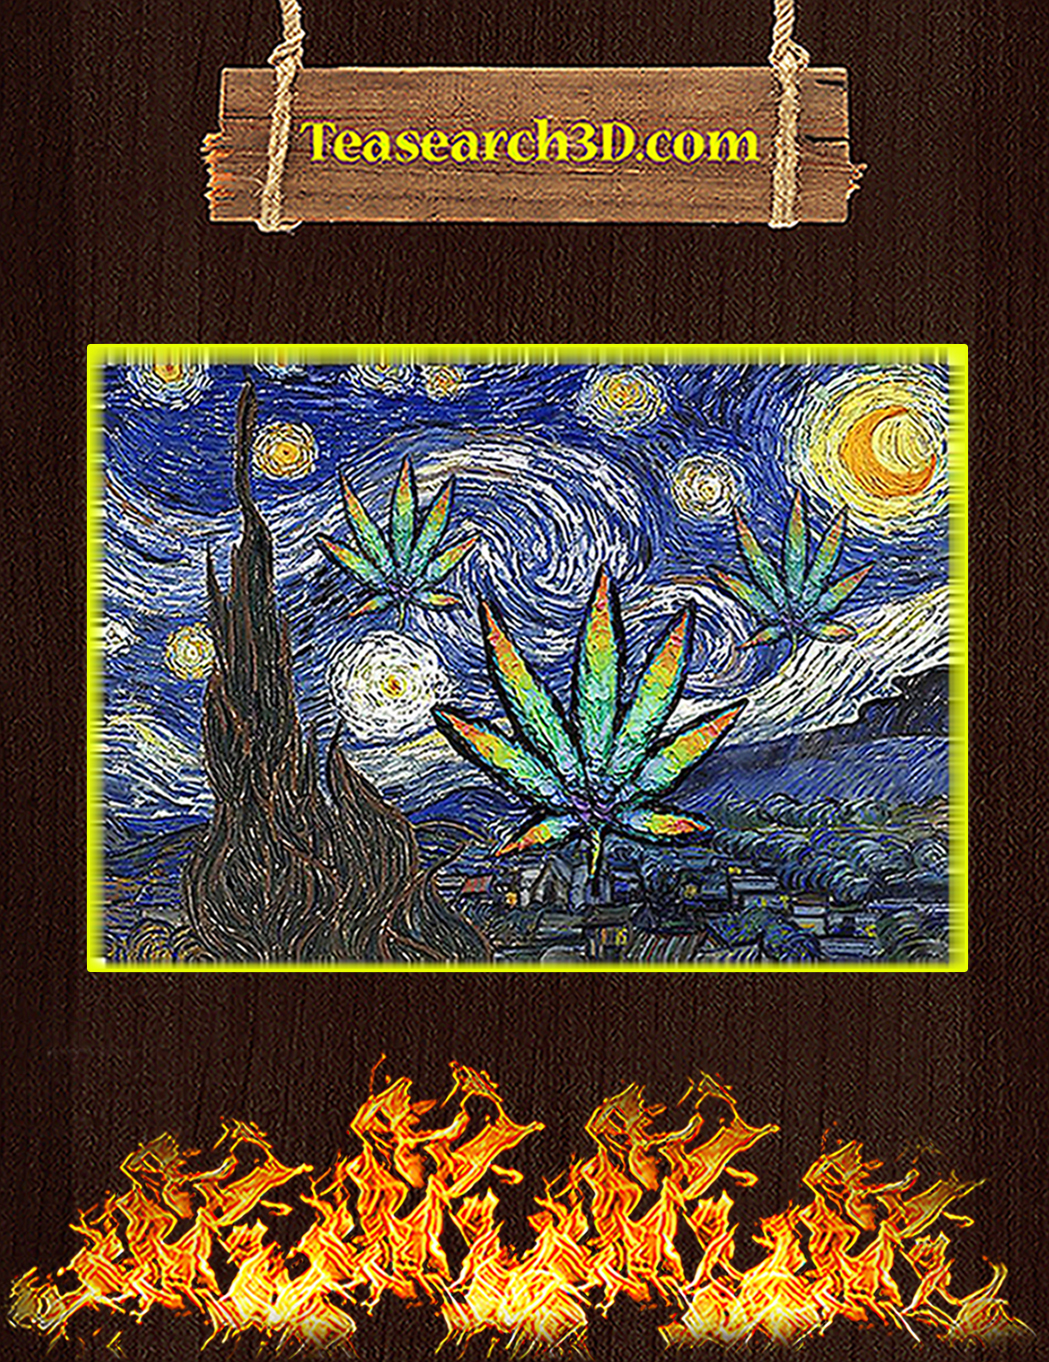 Weed cannabis starry night van gogh poster A1